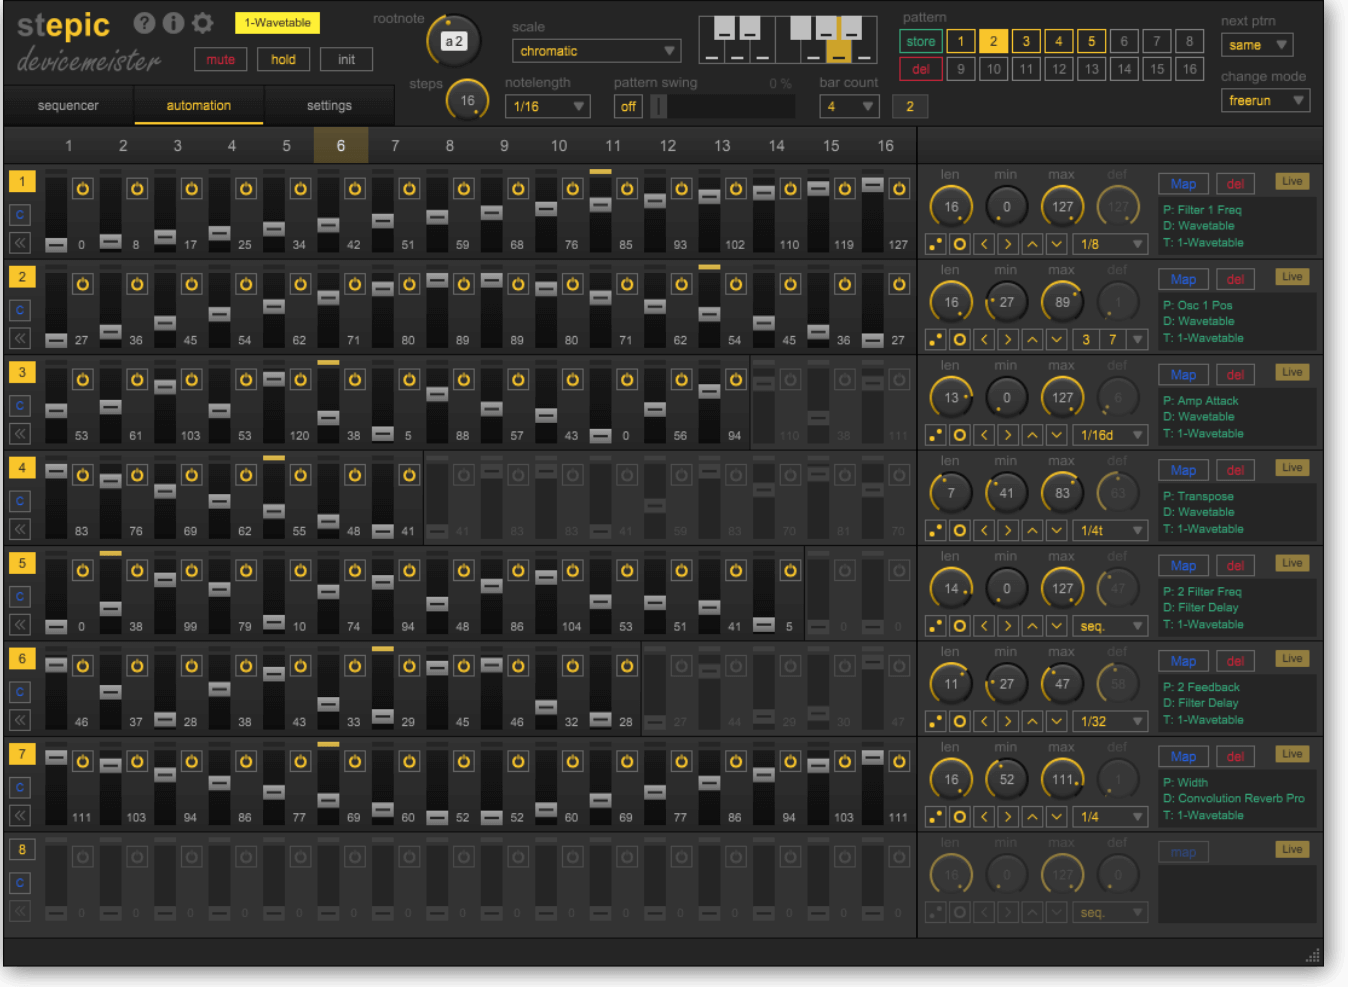 Devicemeister Stepic Modulation View